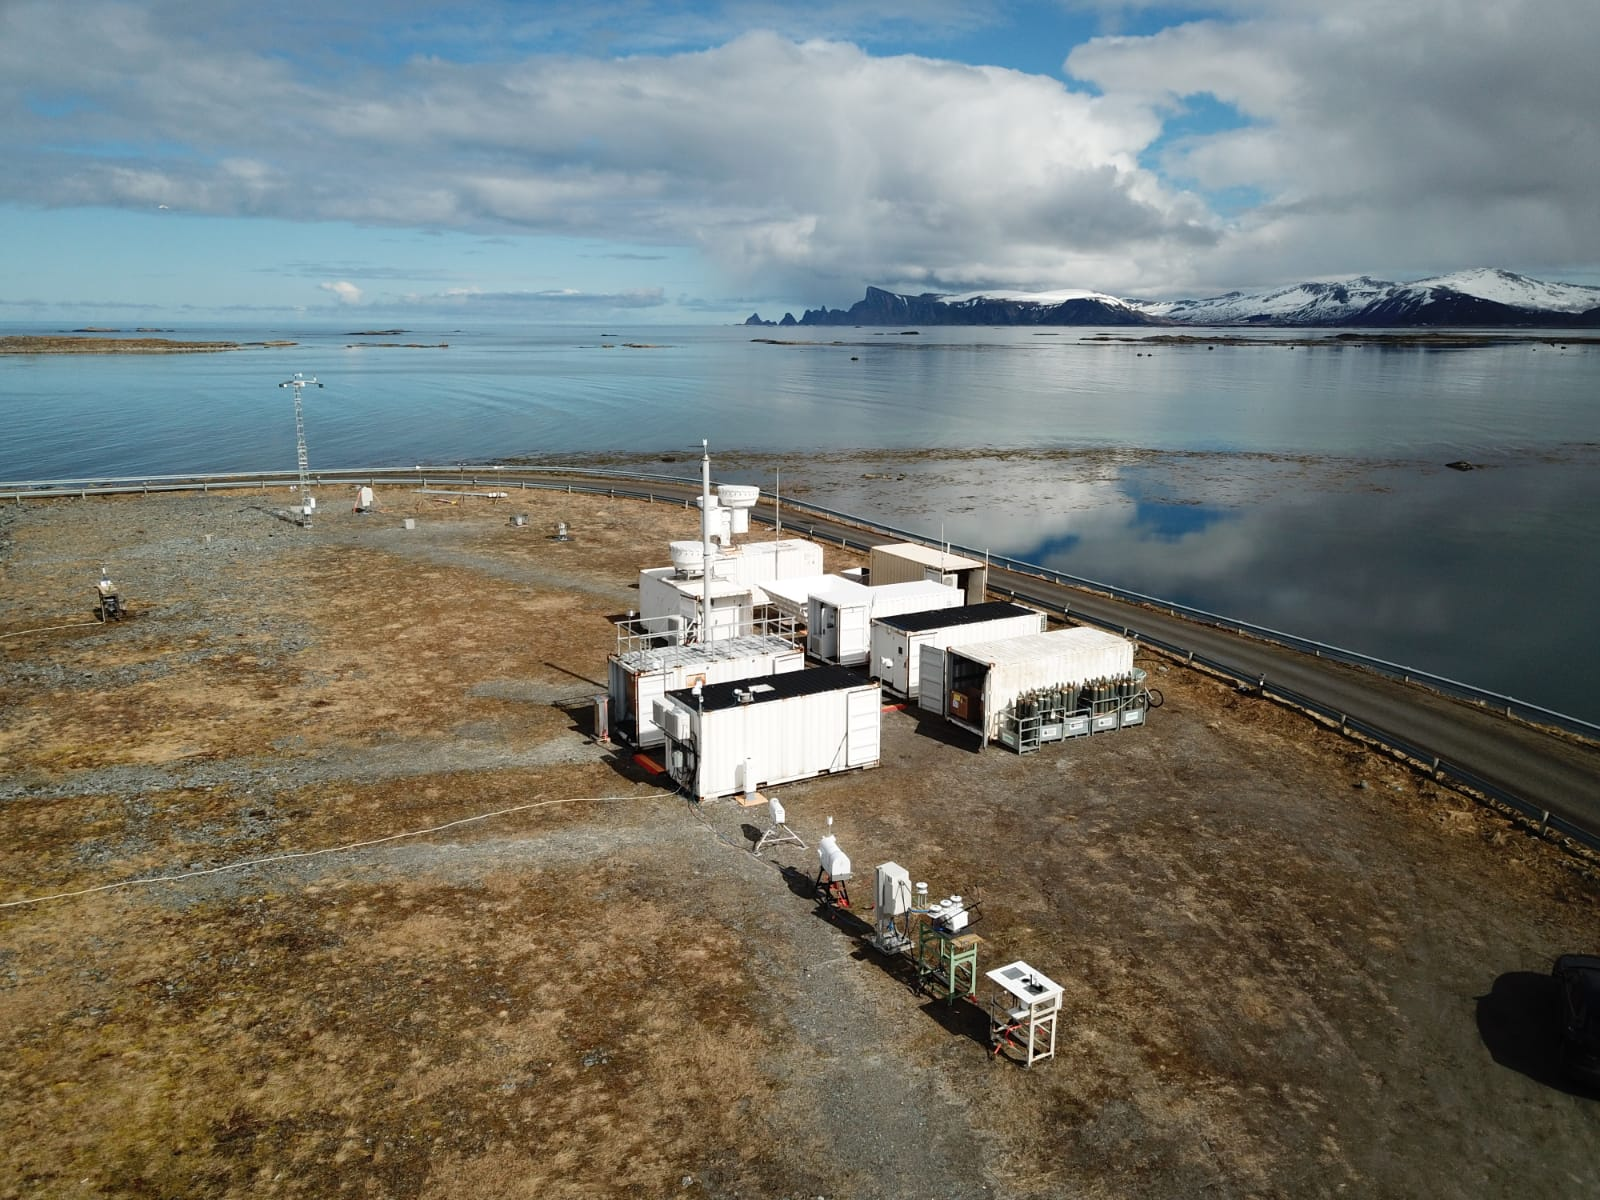 First ARM Mobile Facility (AMF1) sited on Norwegian Sea for COMBLE field campaign